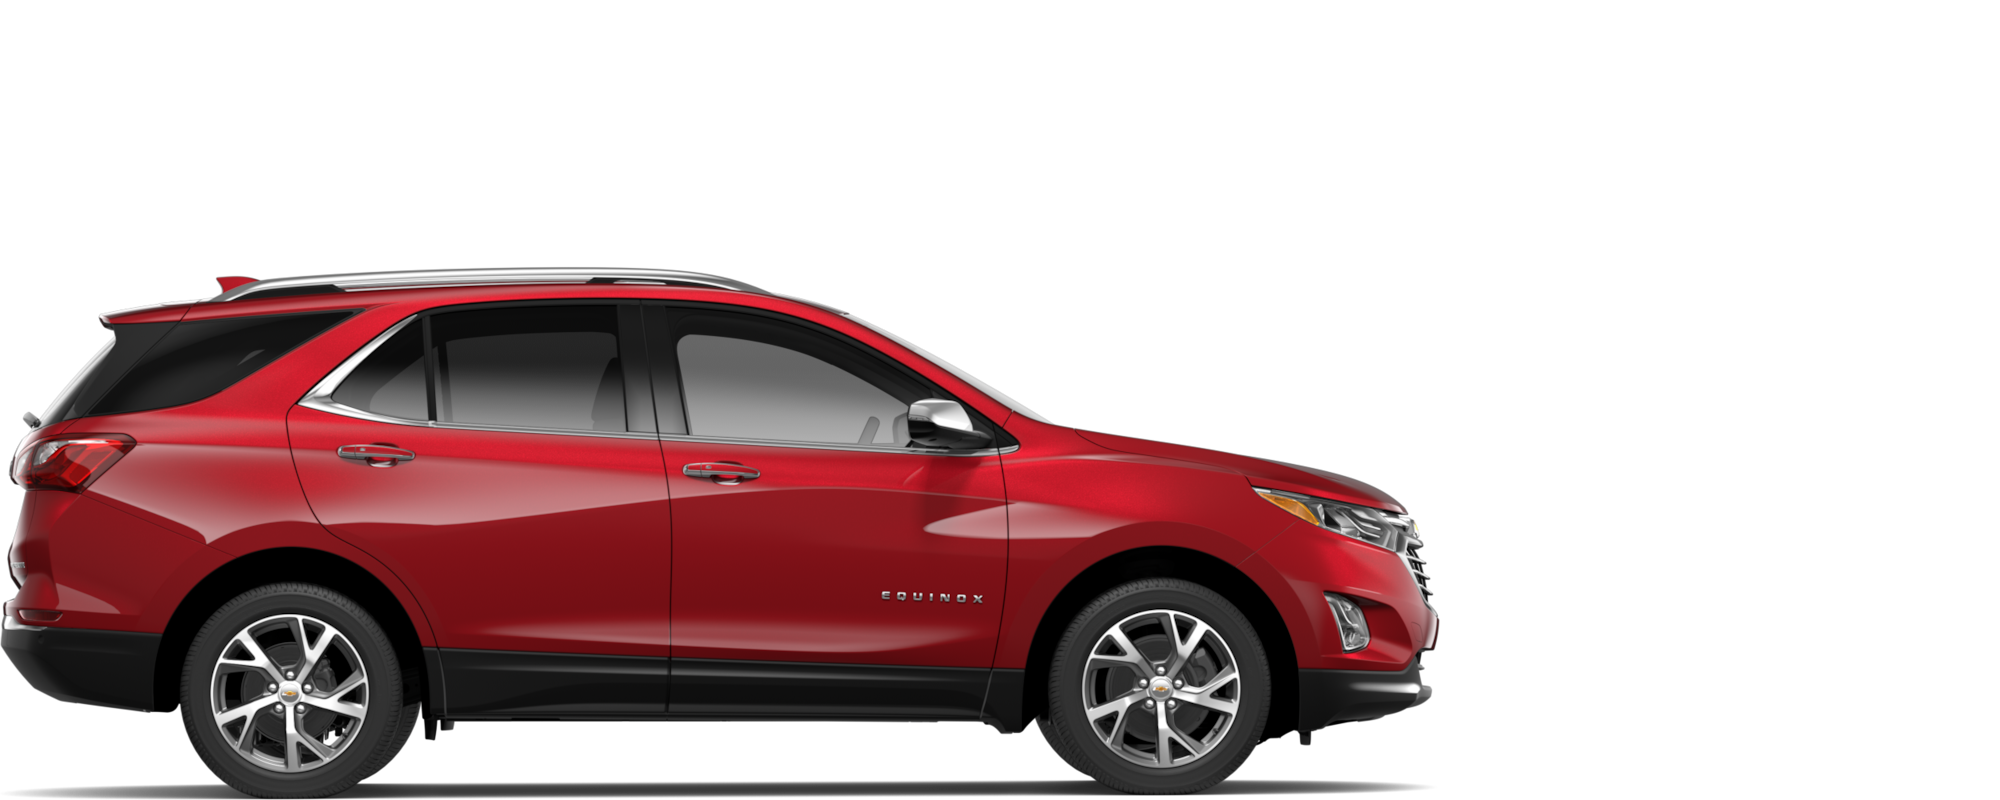 Request A Quote. 2019 Equinox